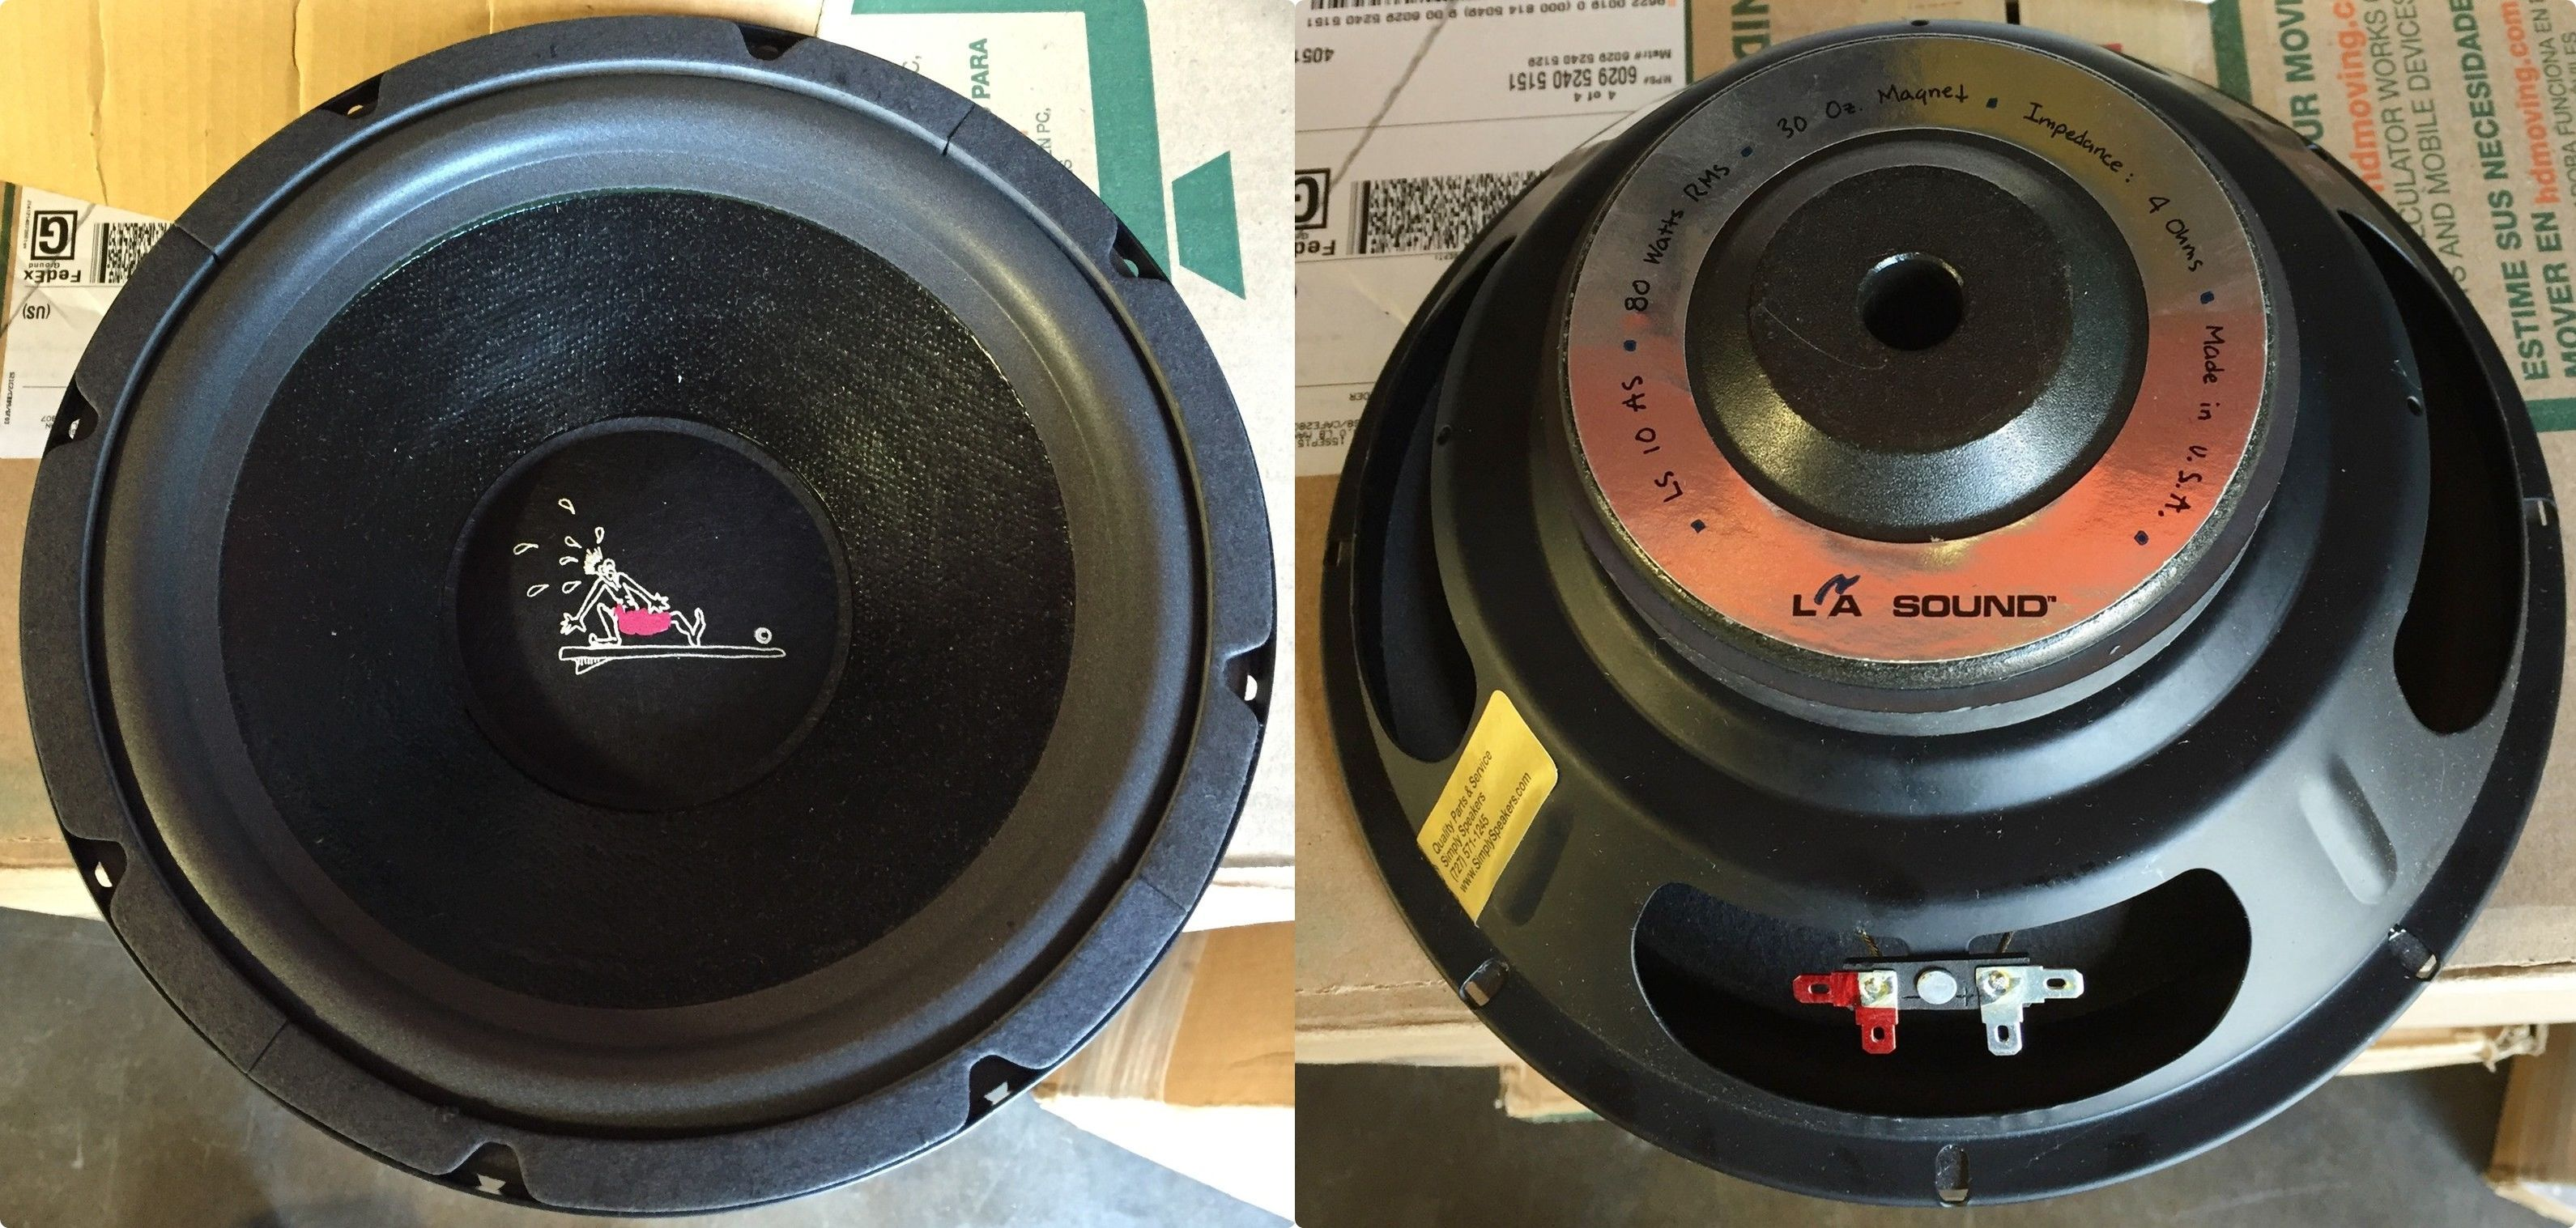 ee99a737e13bfe02762b55331555fa2a la sound ls10as 10 inch svc subwoofer made in usa car audio  at eliteediting.co